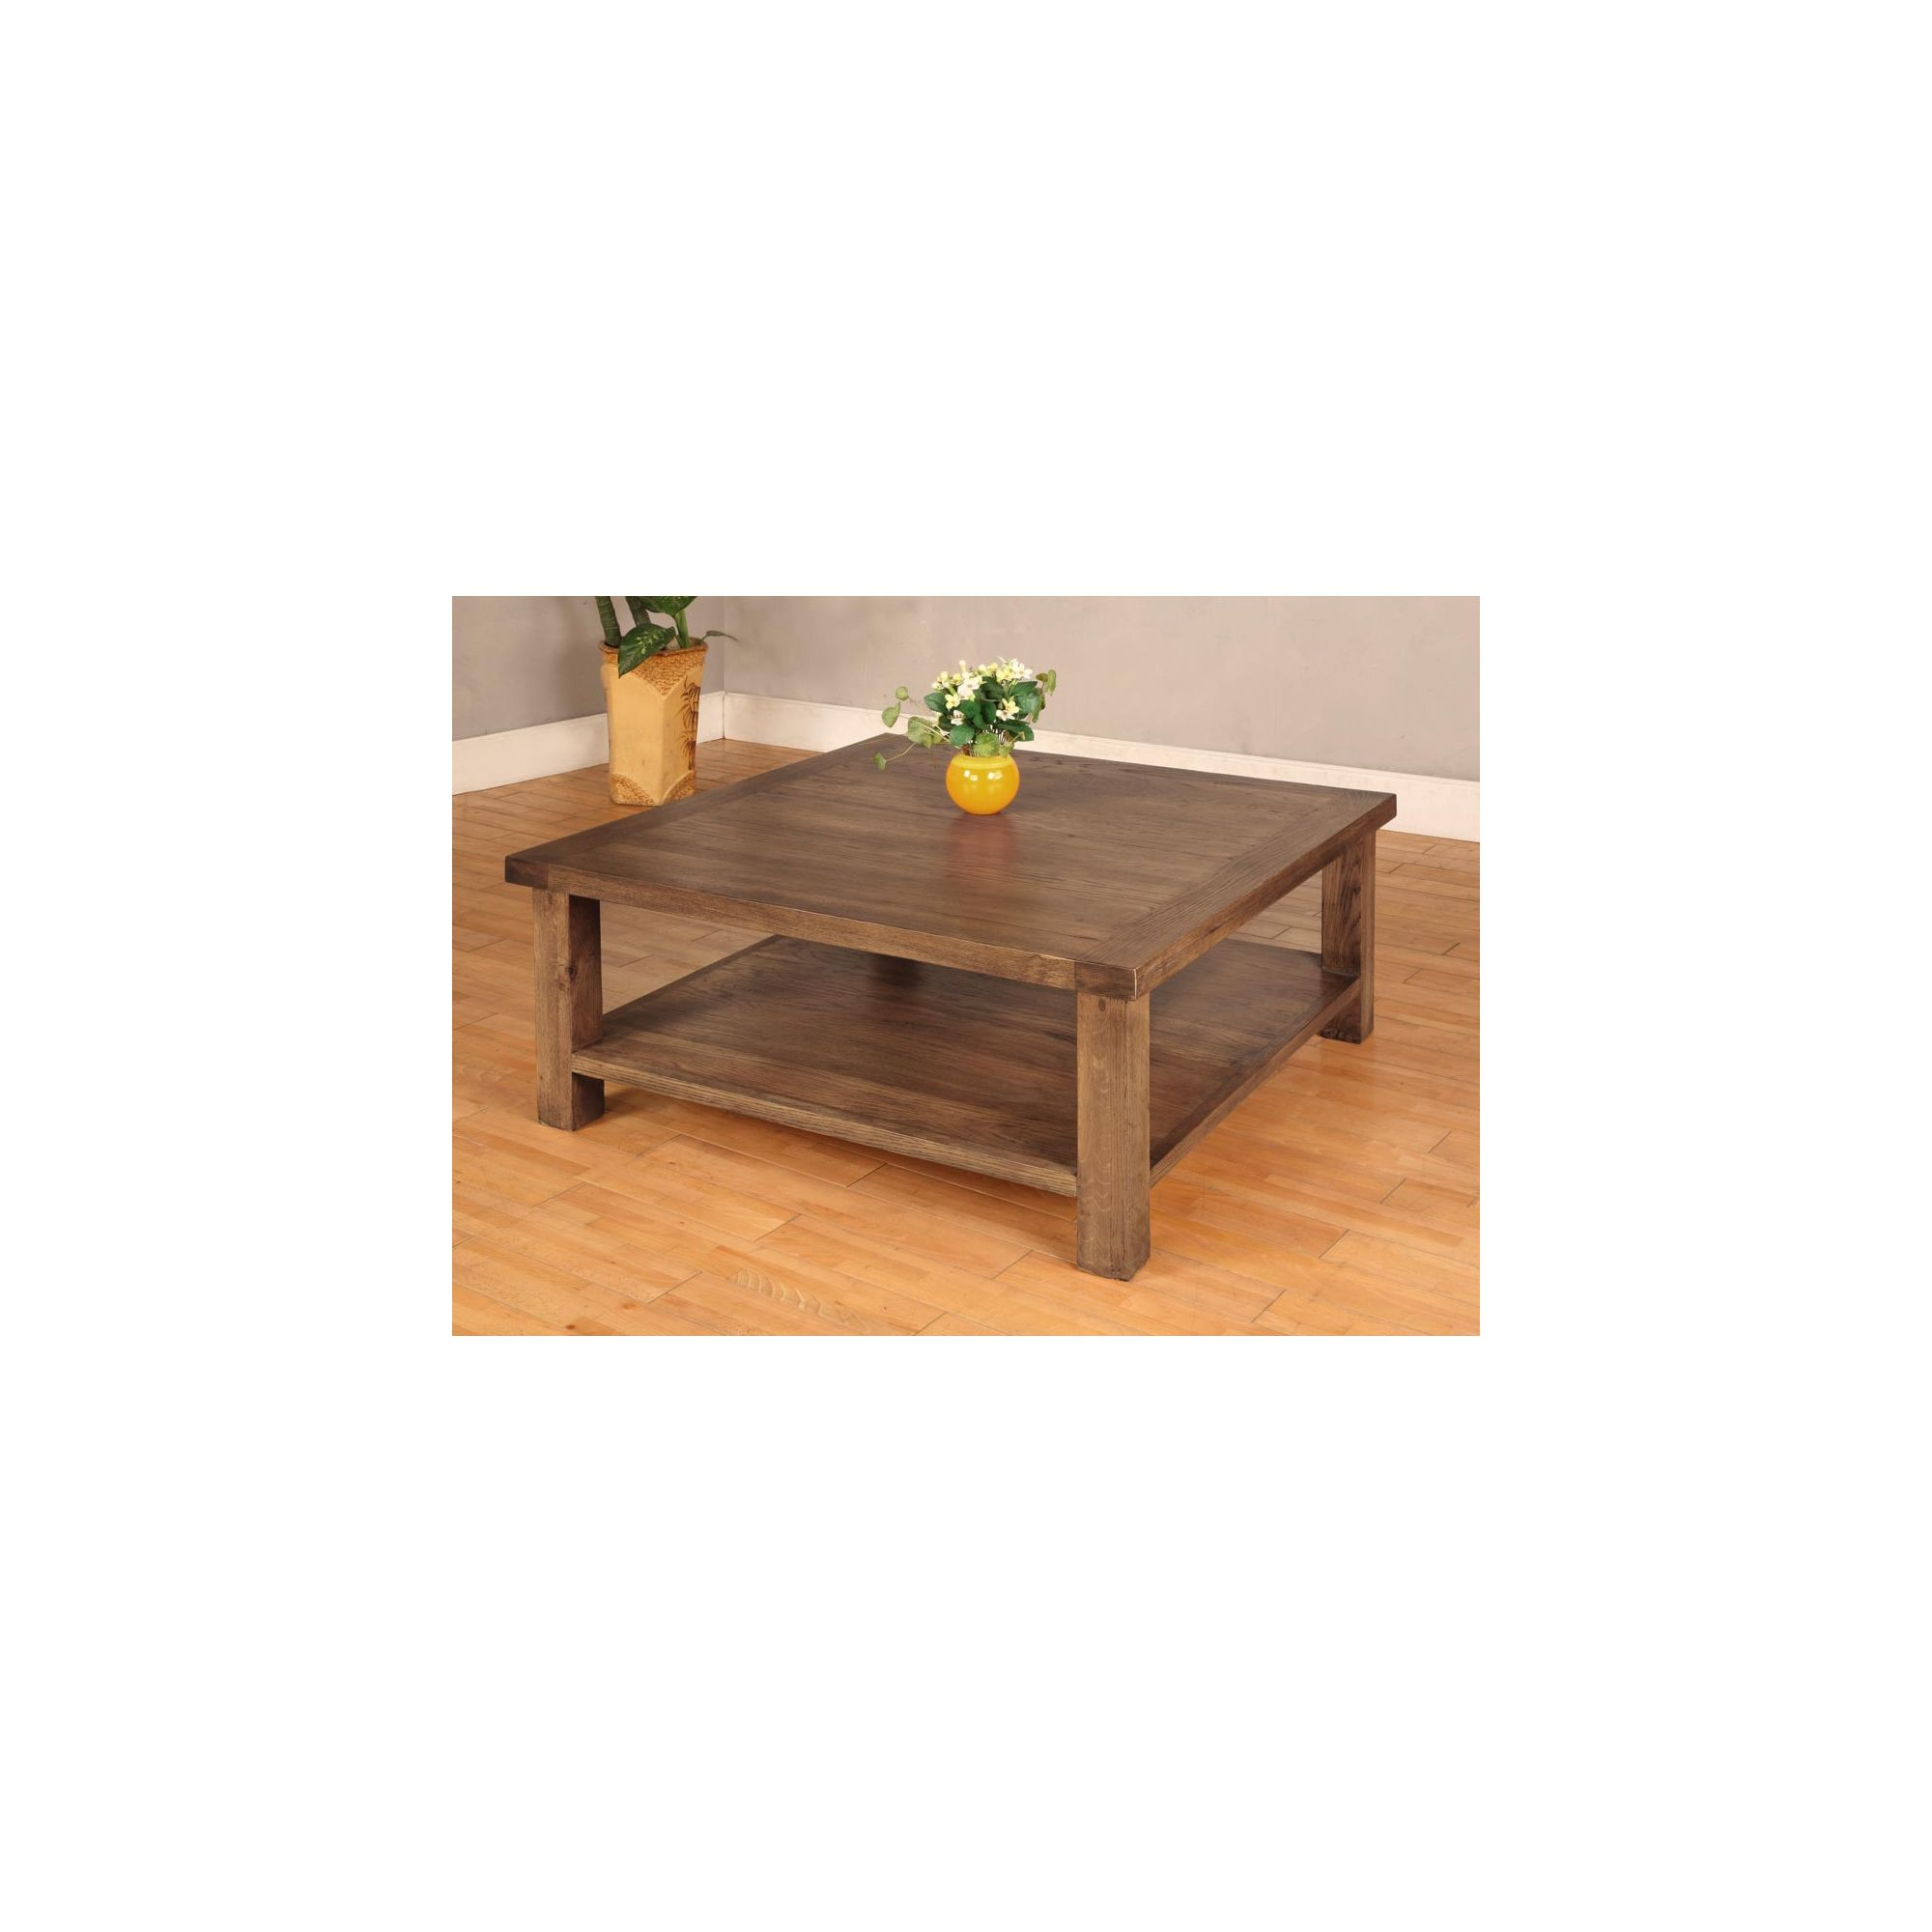 Hawkshead Brooklyn Square Coffee Table at Tesco Direct